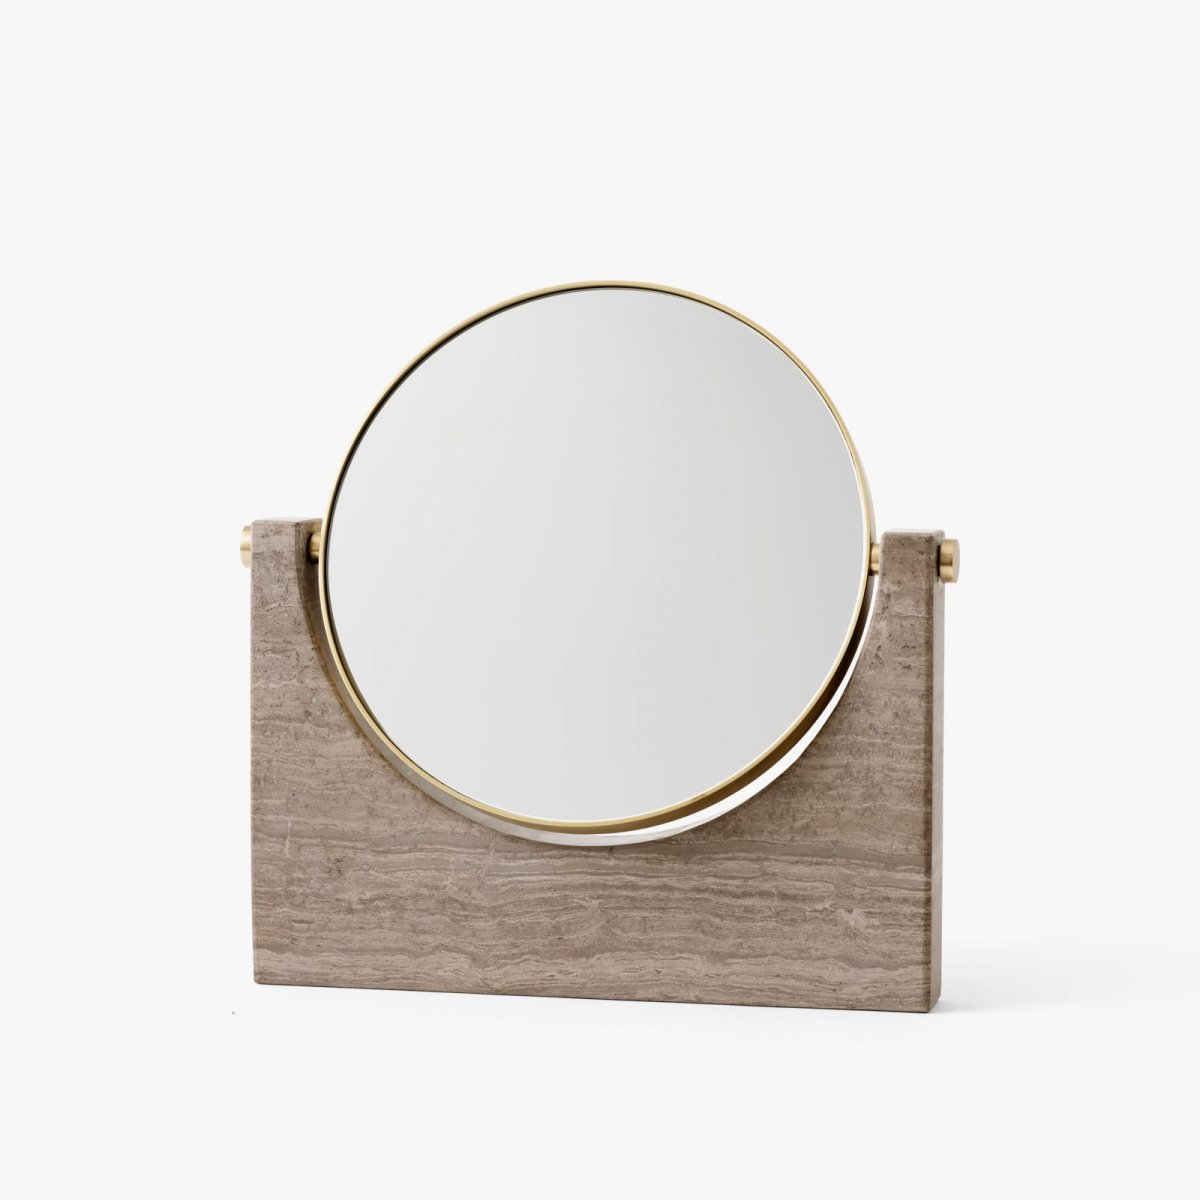 Pepe Marble Mirror, brown.